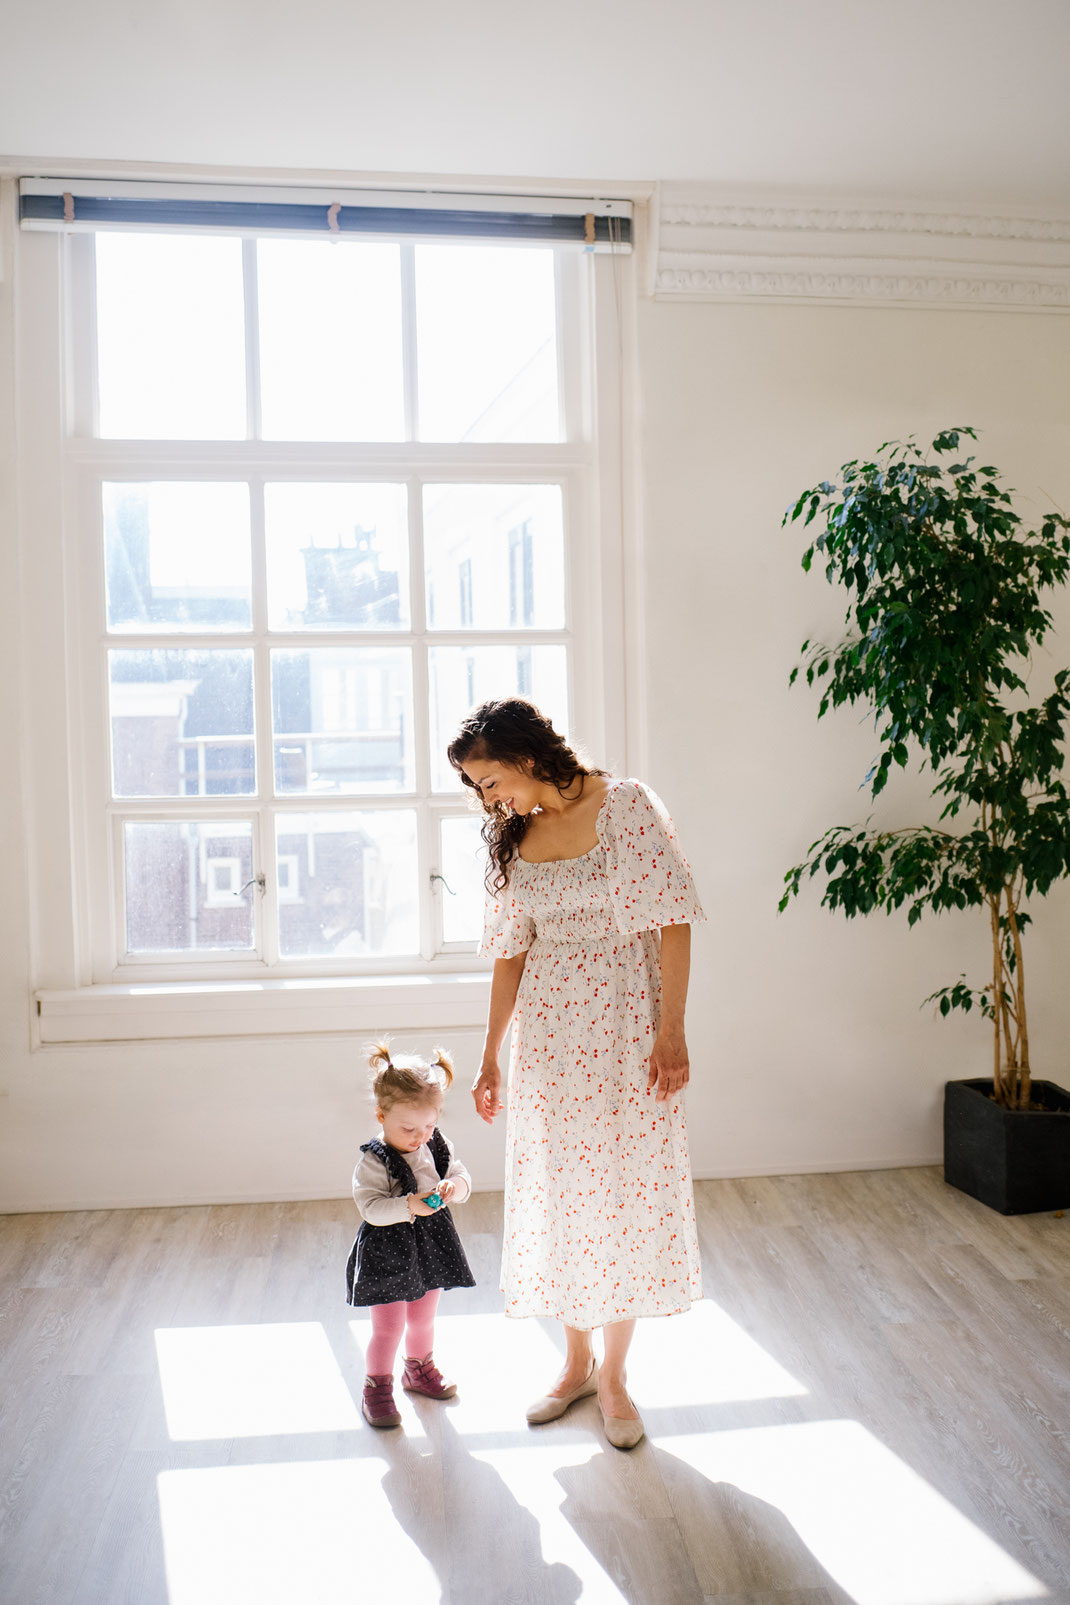 beautiful lighting photoshoot mother and child the Hague